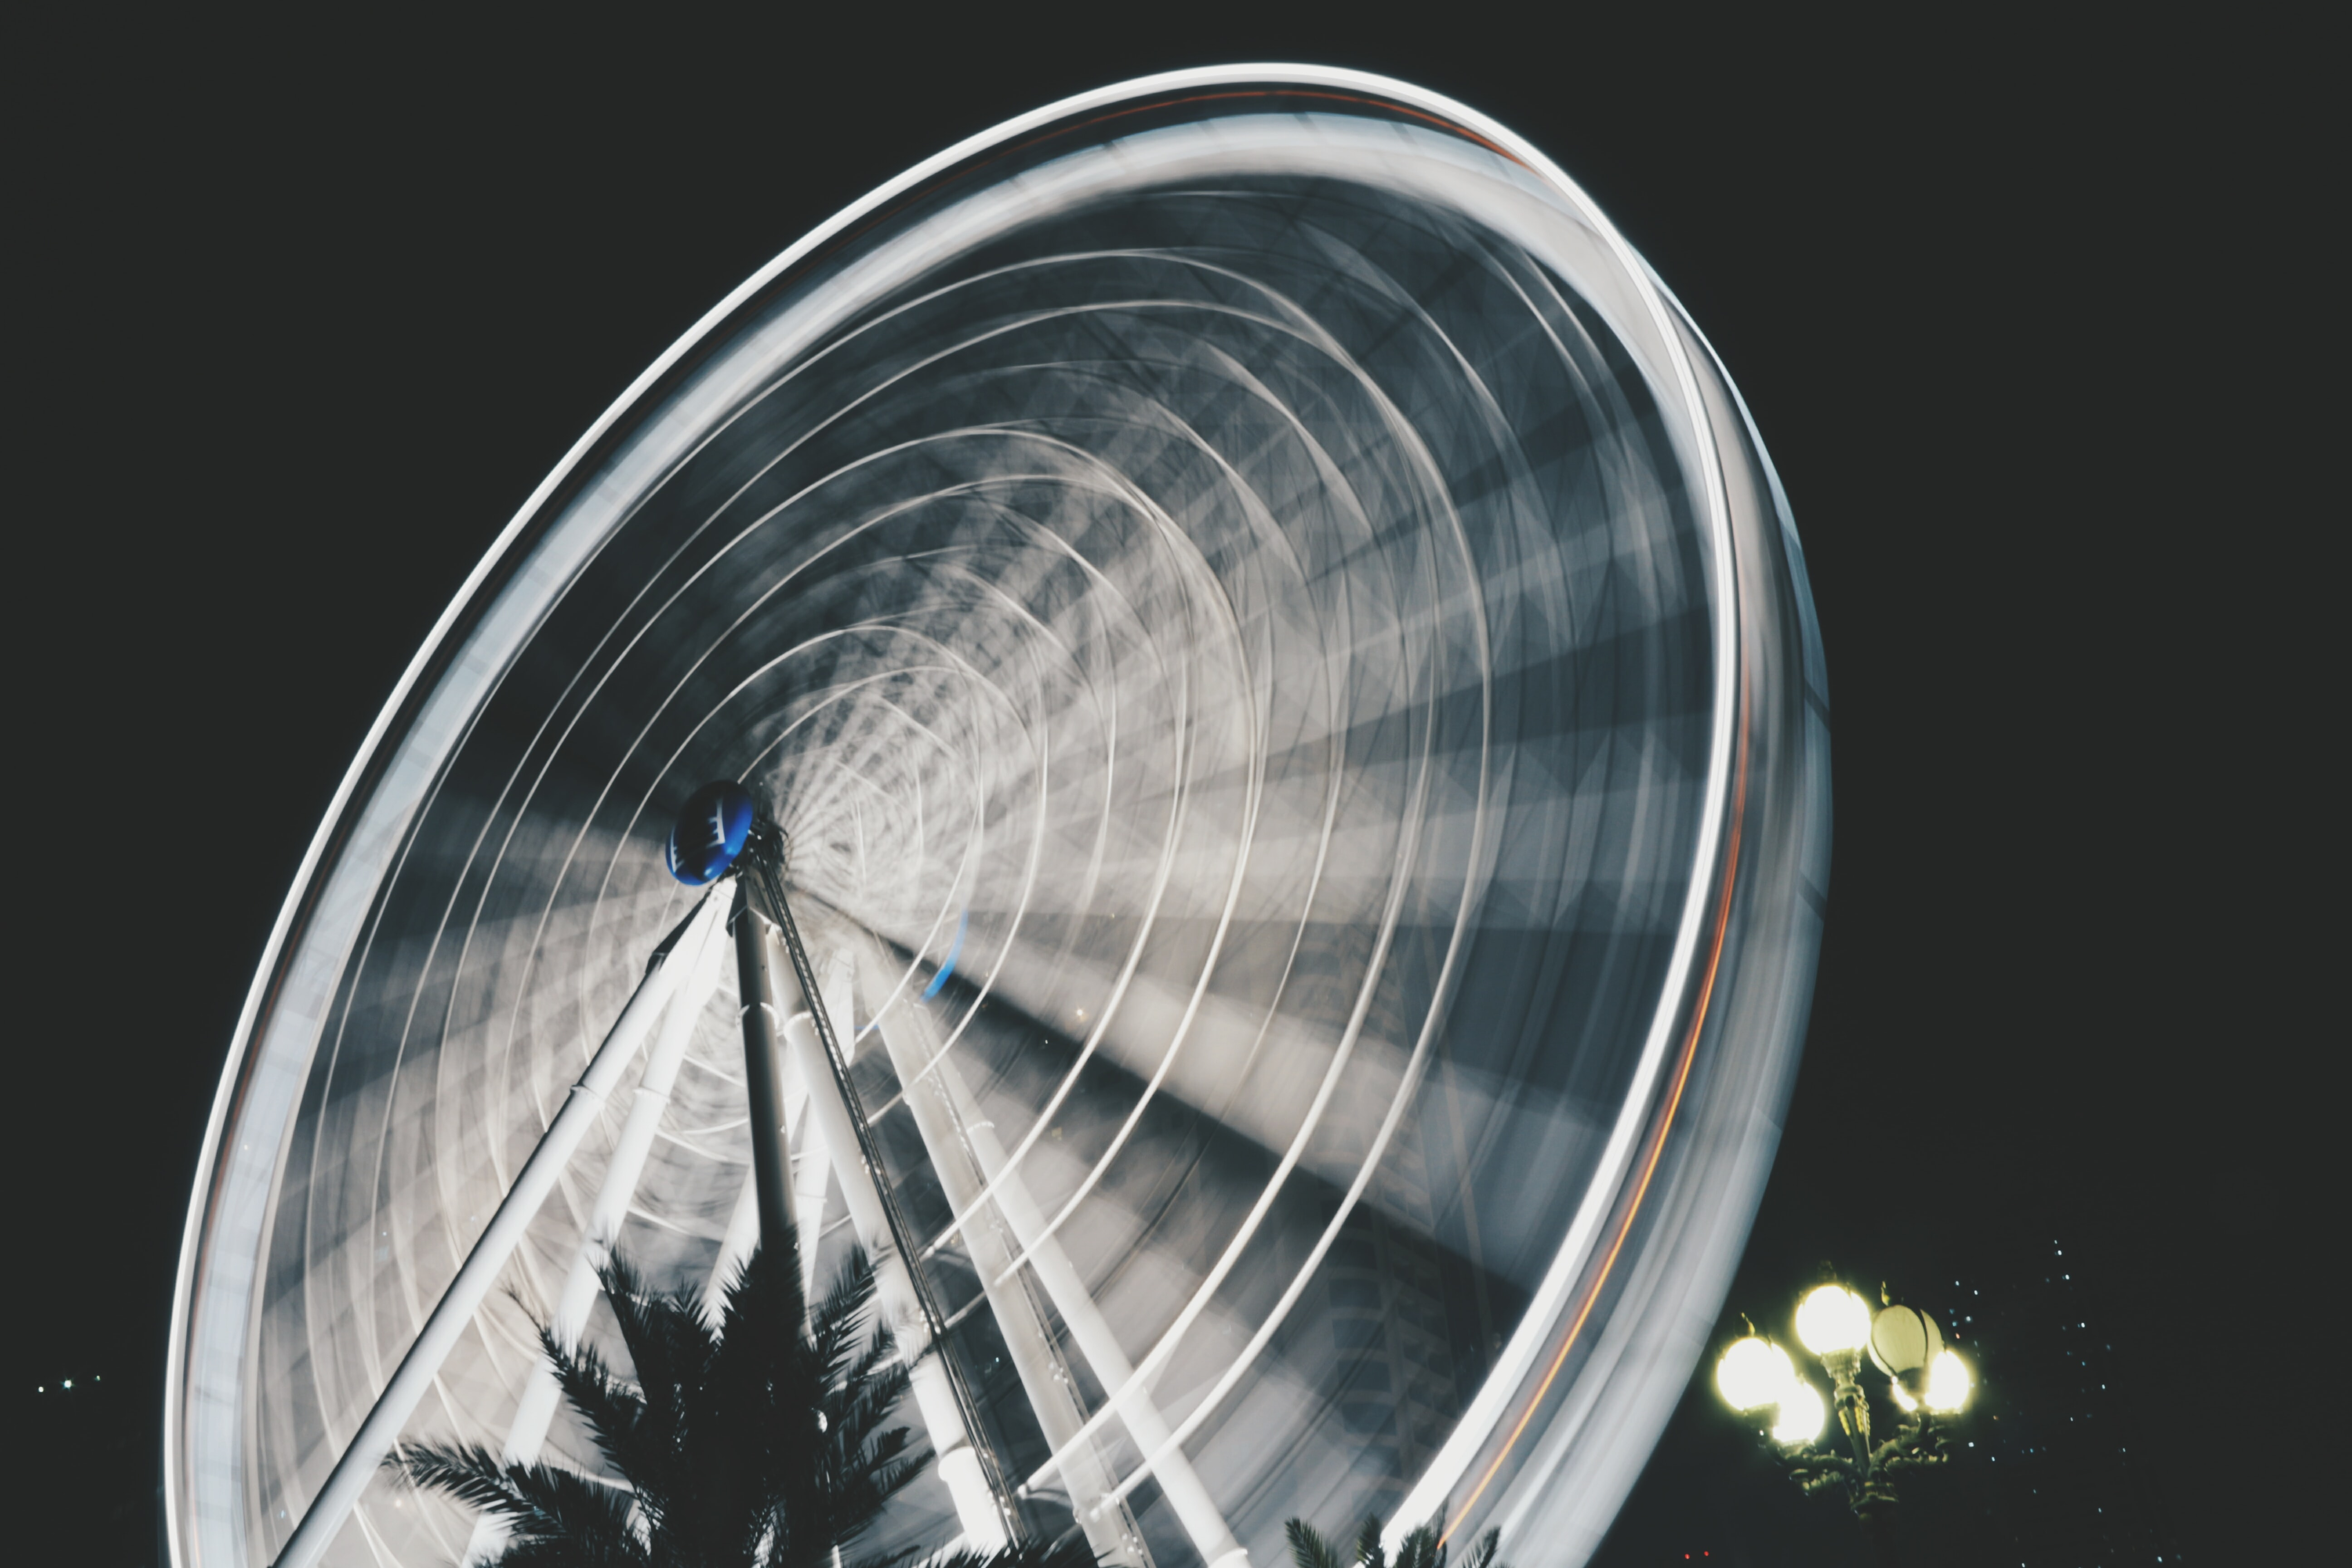 An illuminated ferris wheel in Al Qasba in motion with timelapsed light trails